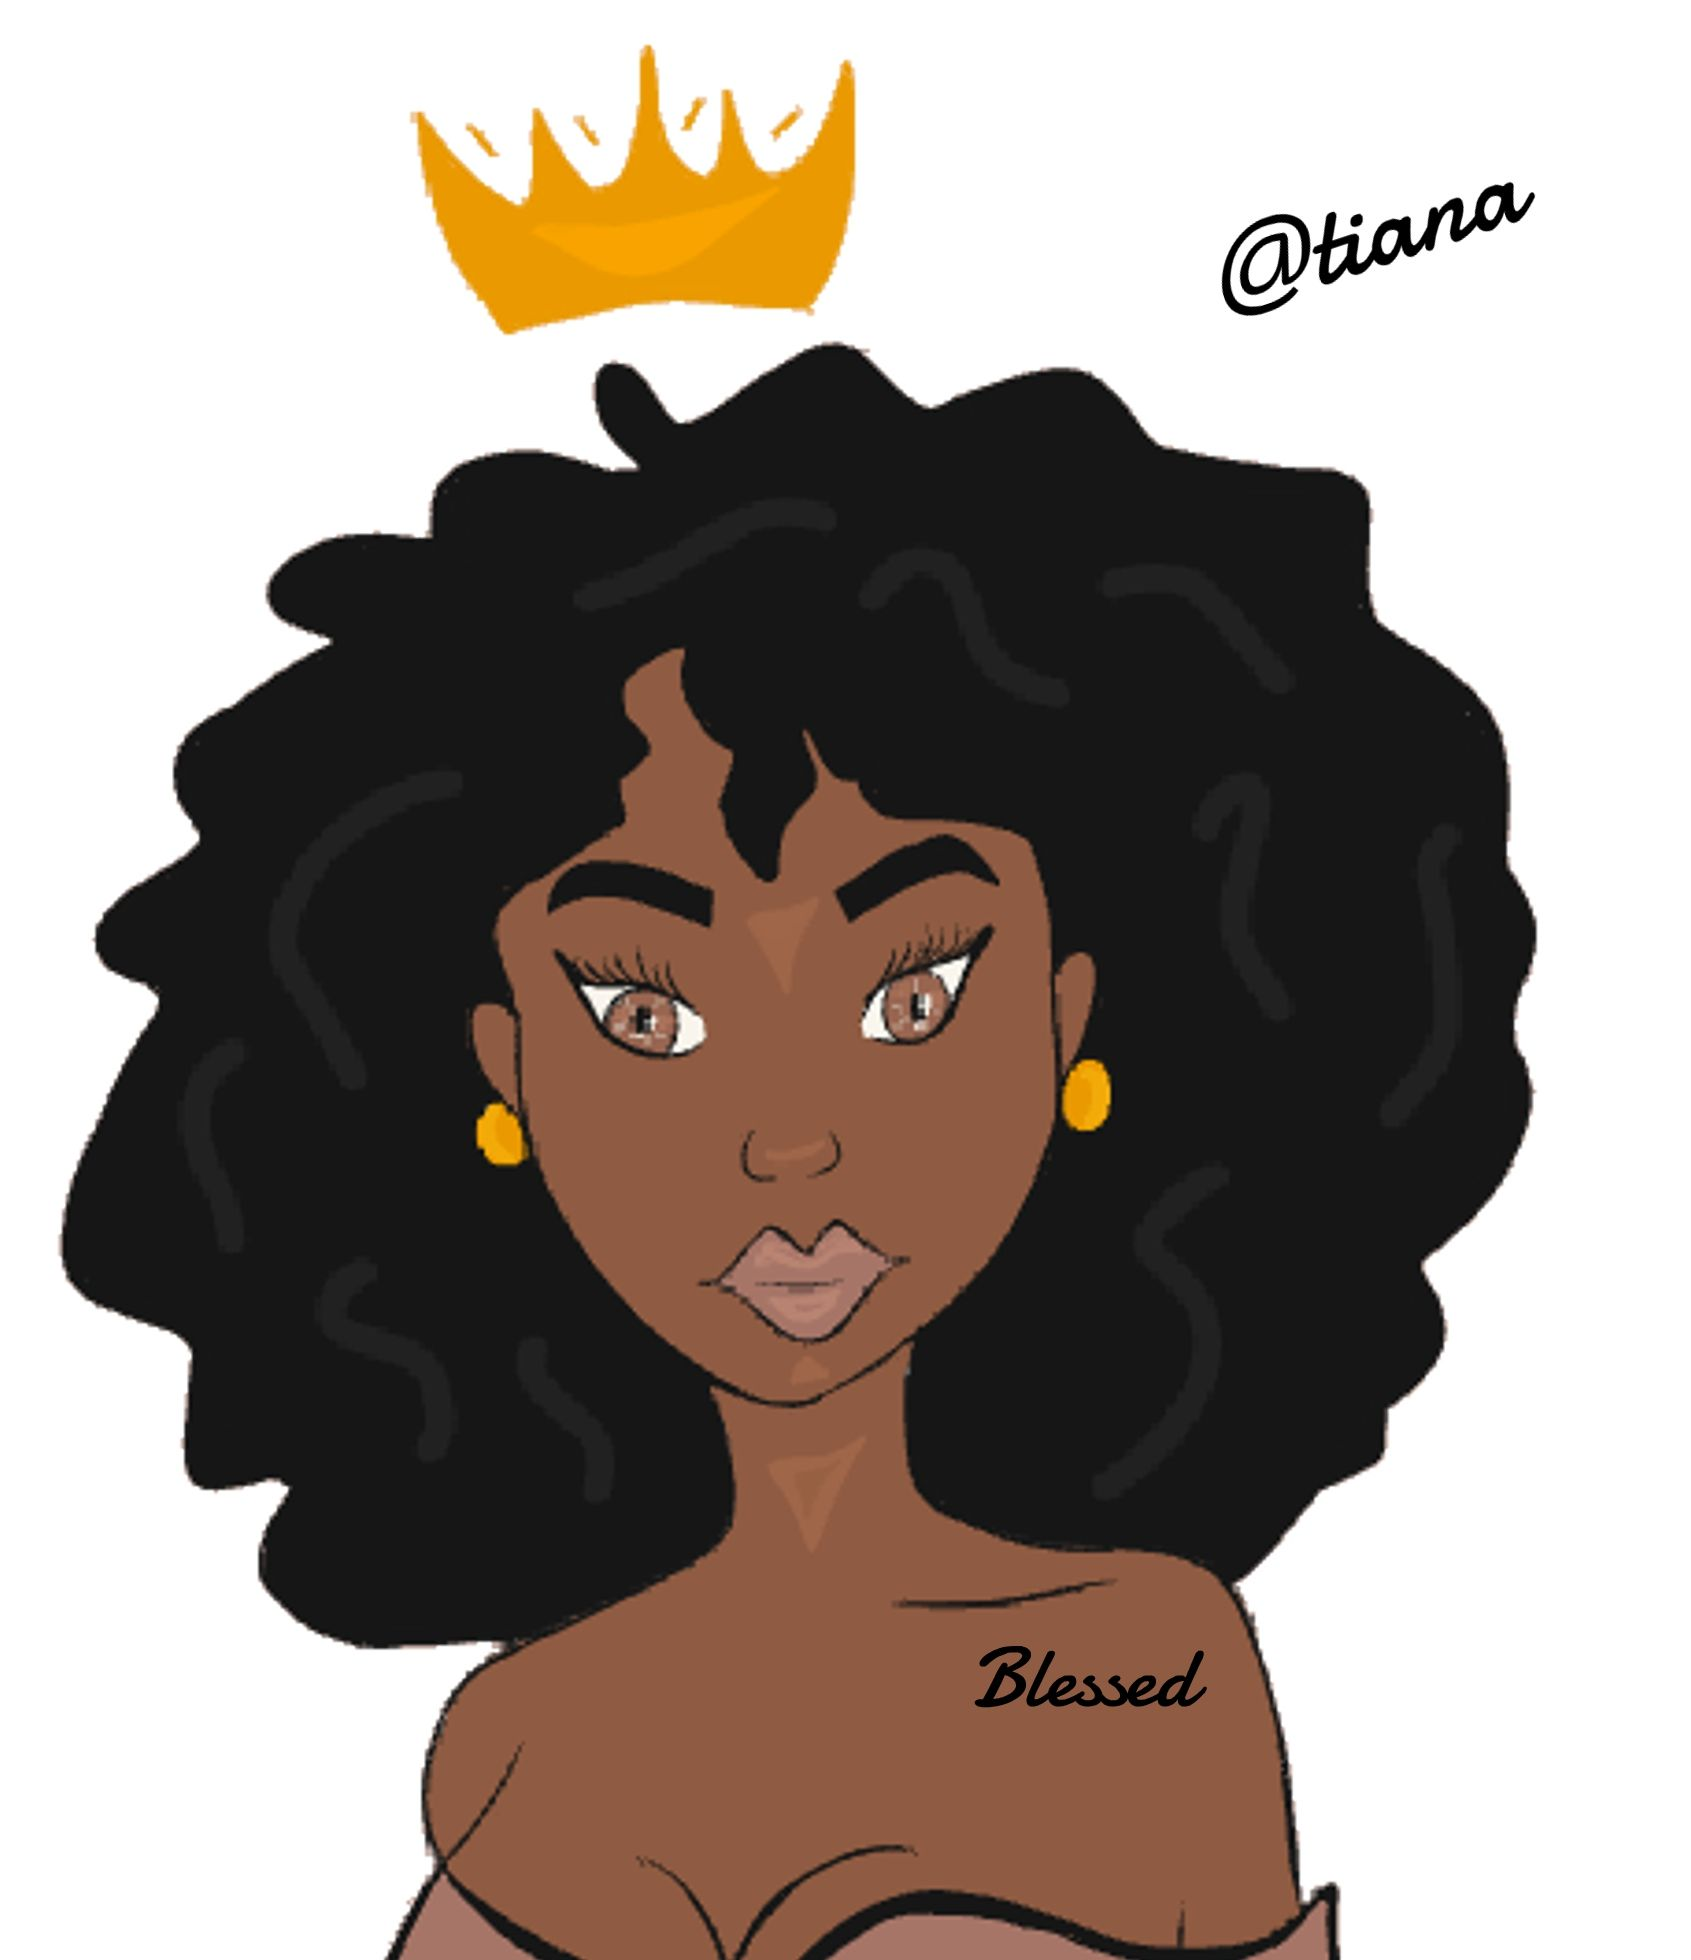 Black Queen black queen crown blessed african illustration